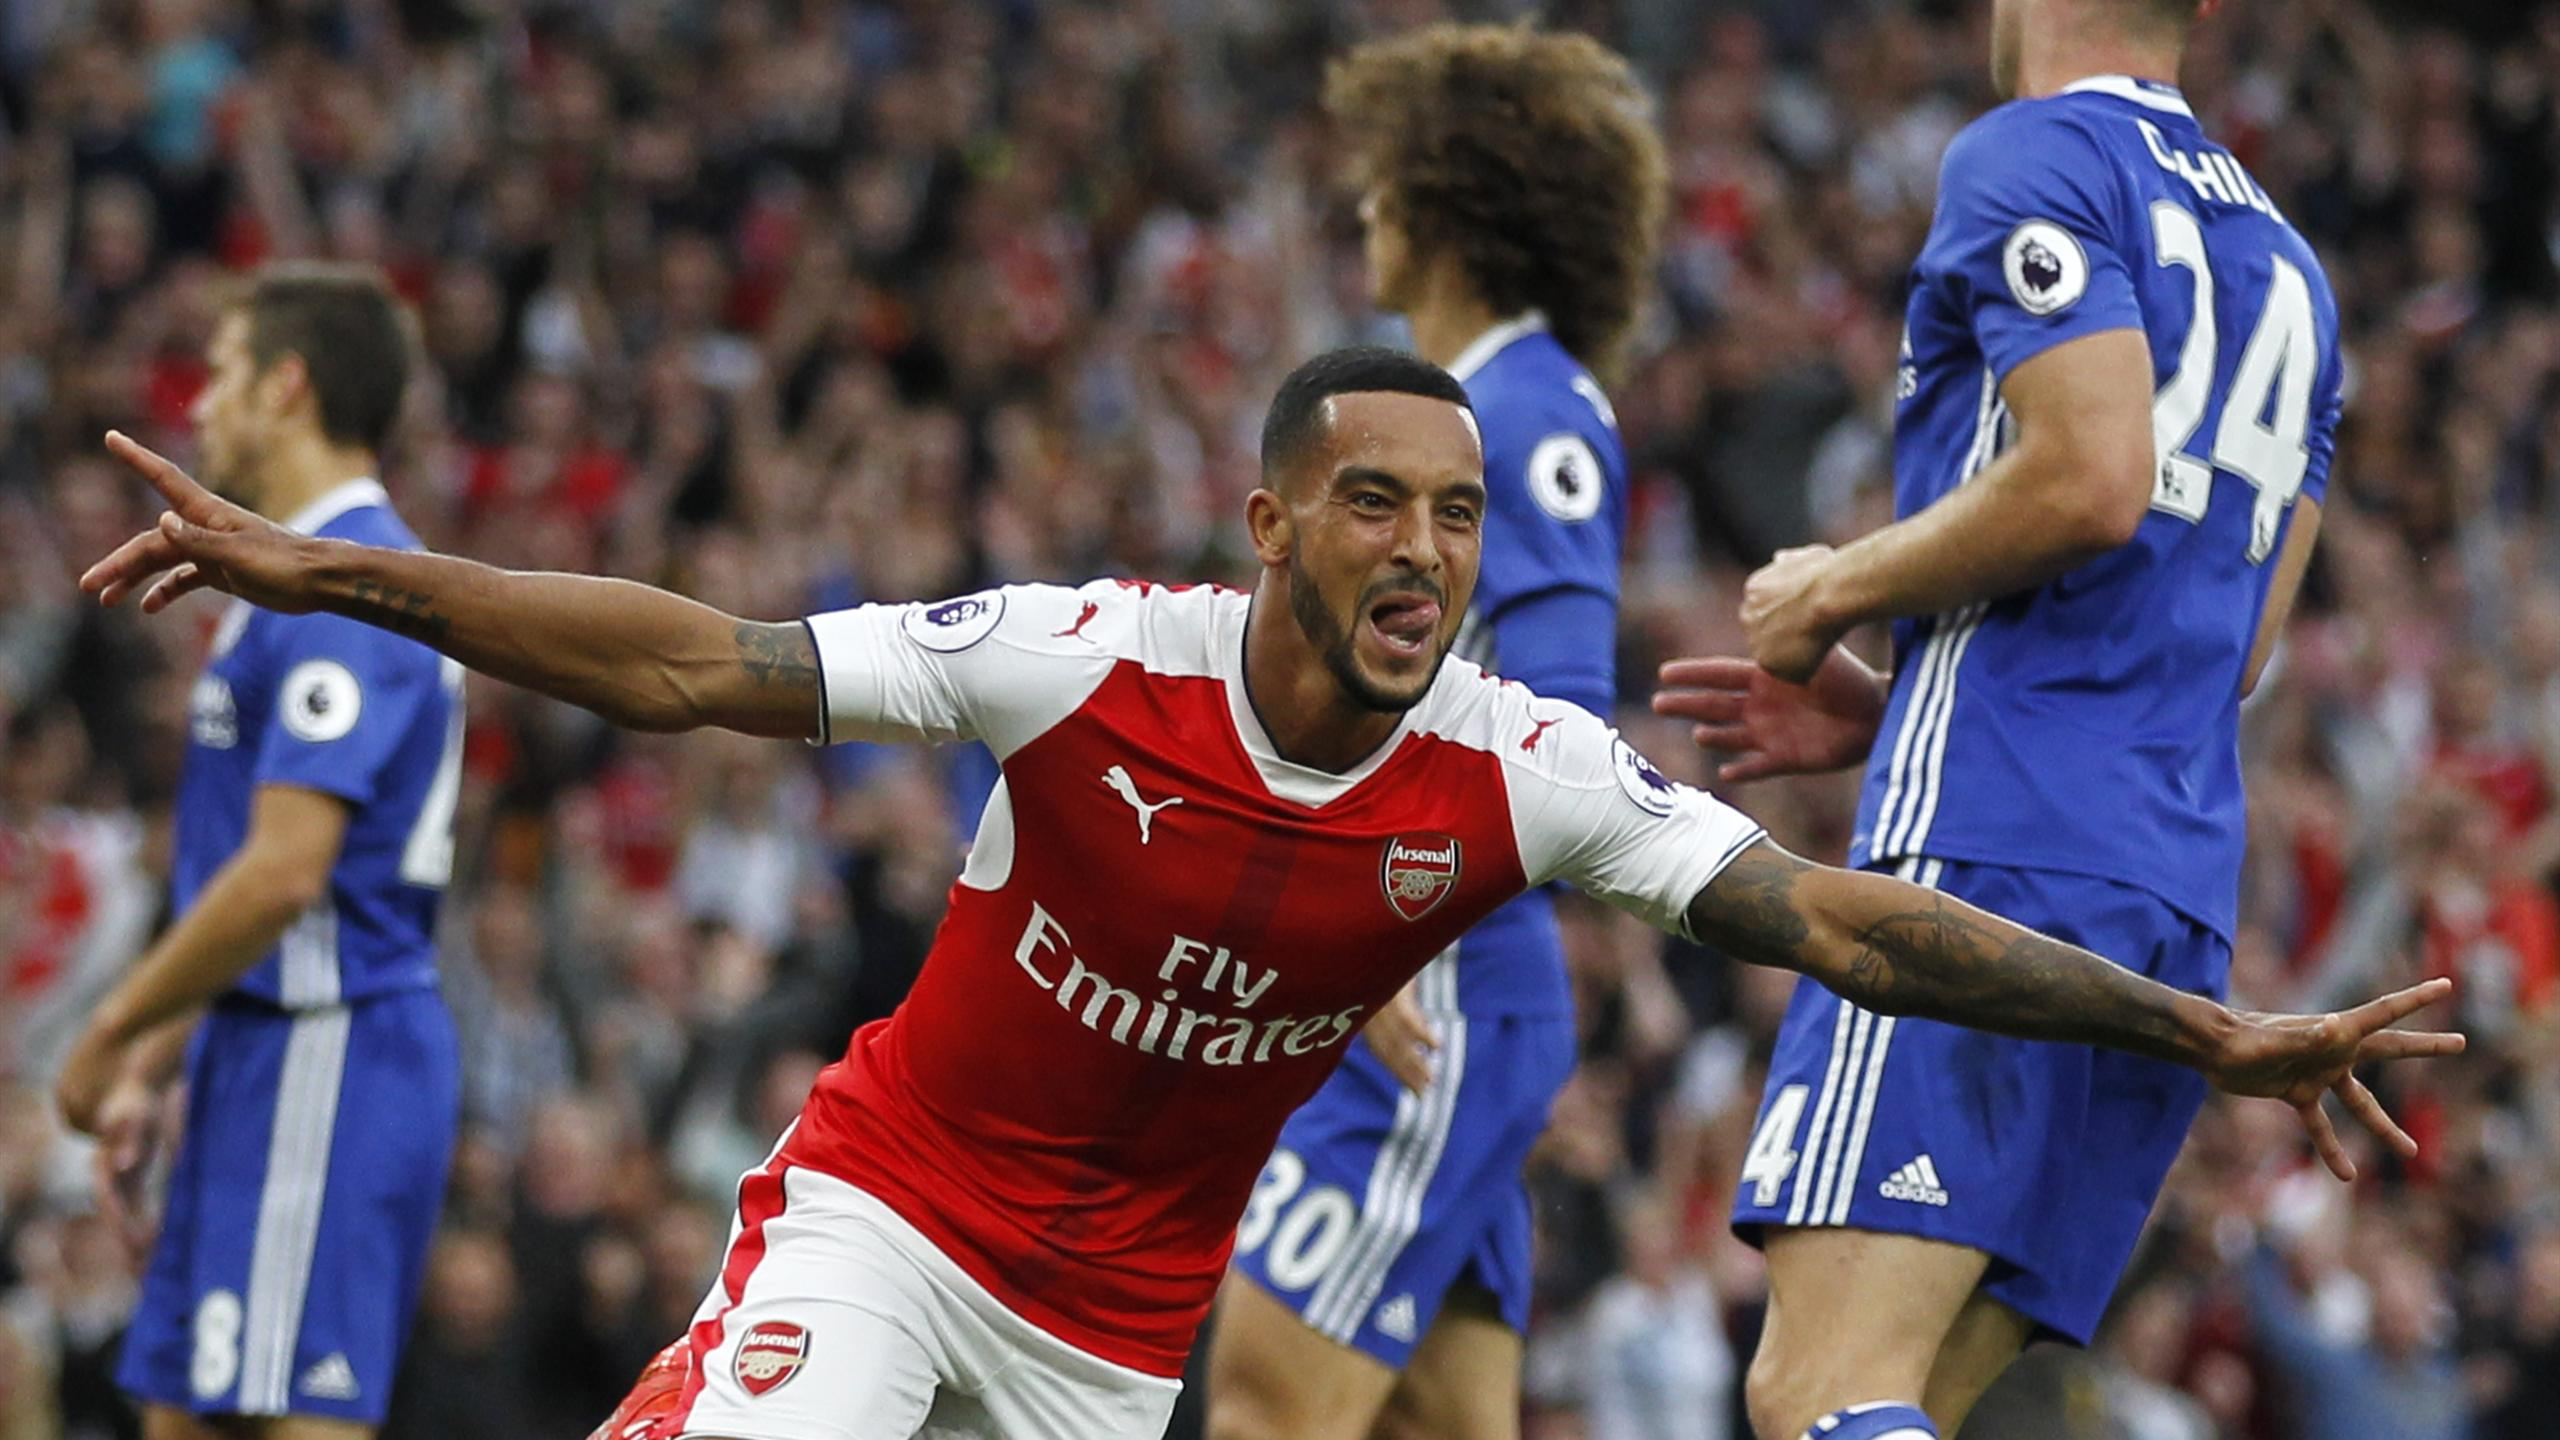 Arsenal's English midfielder Theo Walcott celebrates scoring their second goal